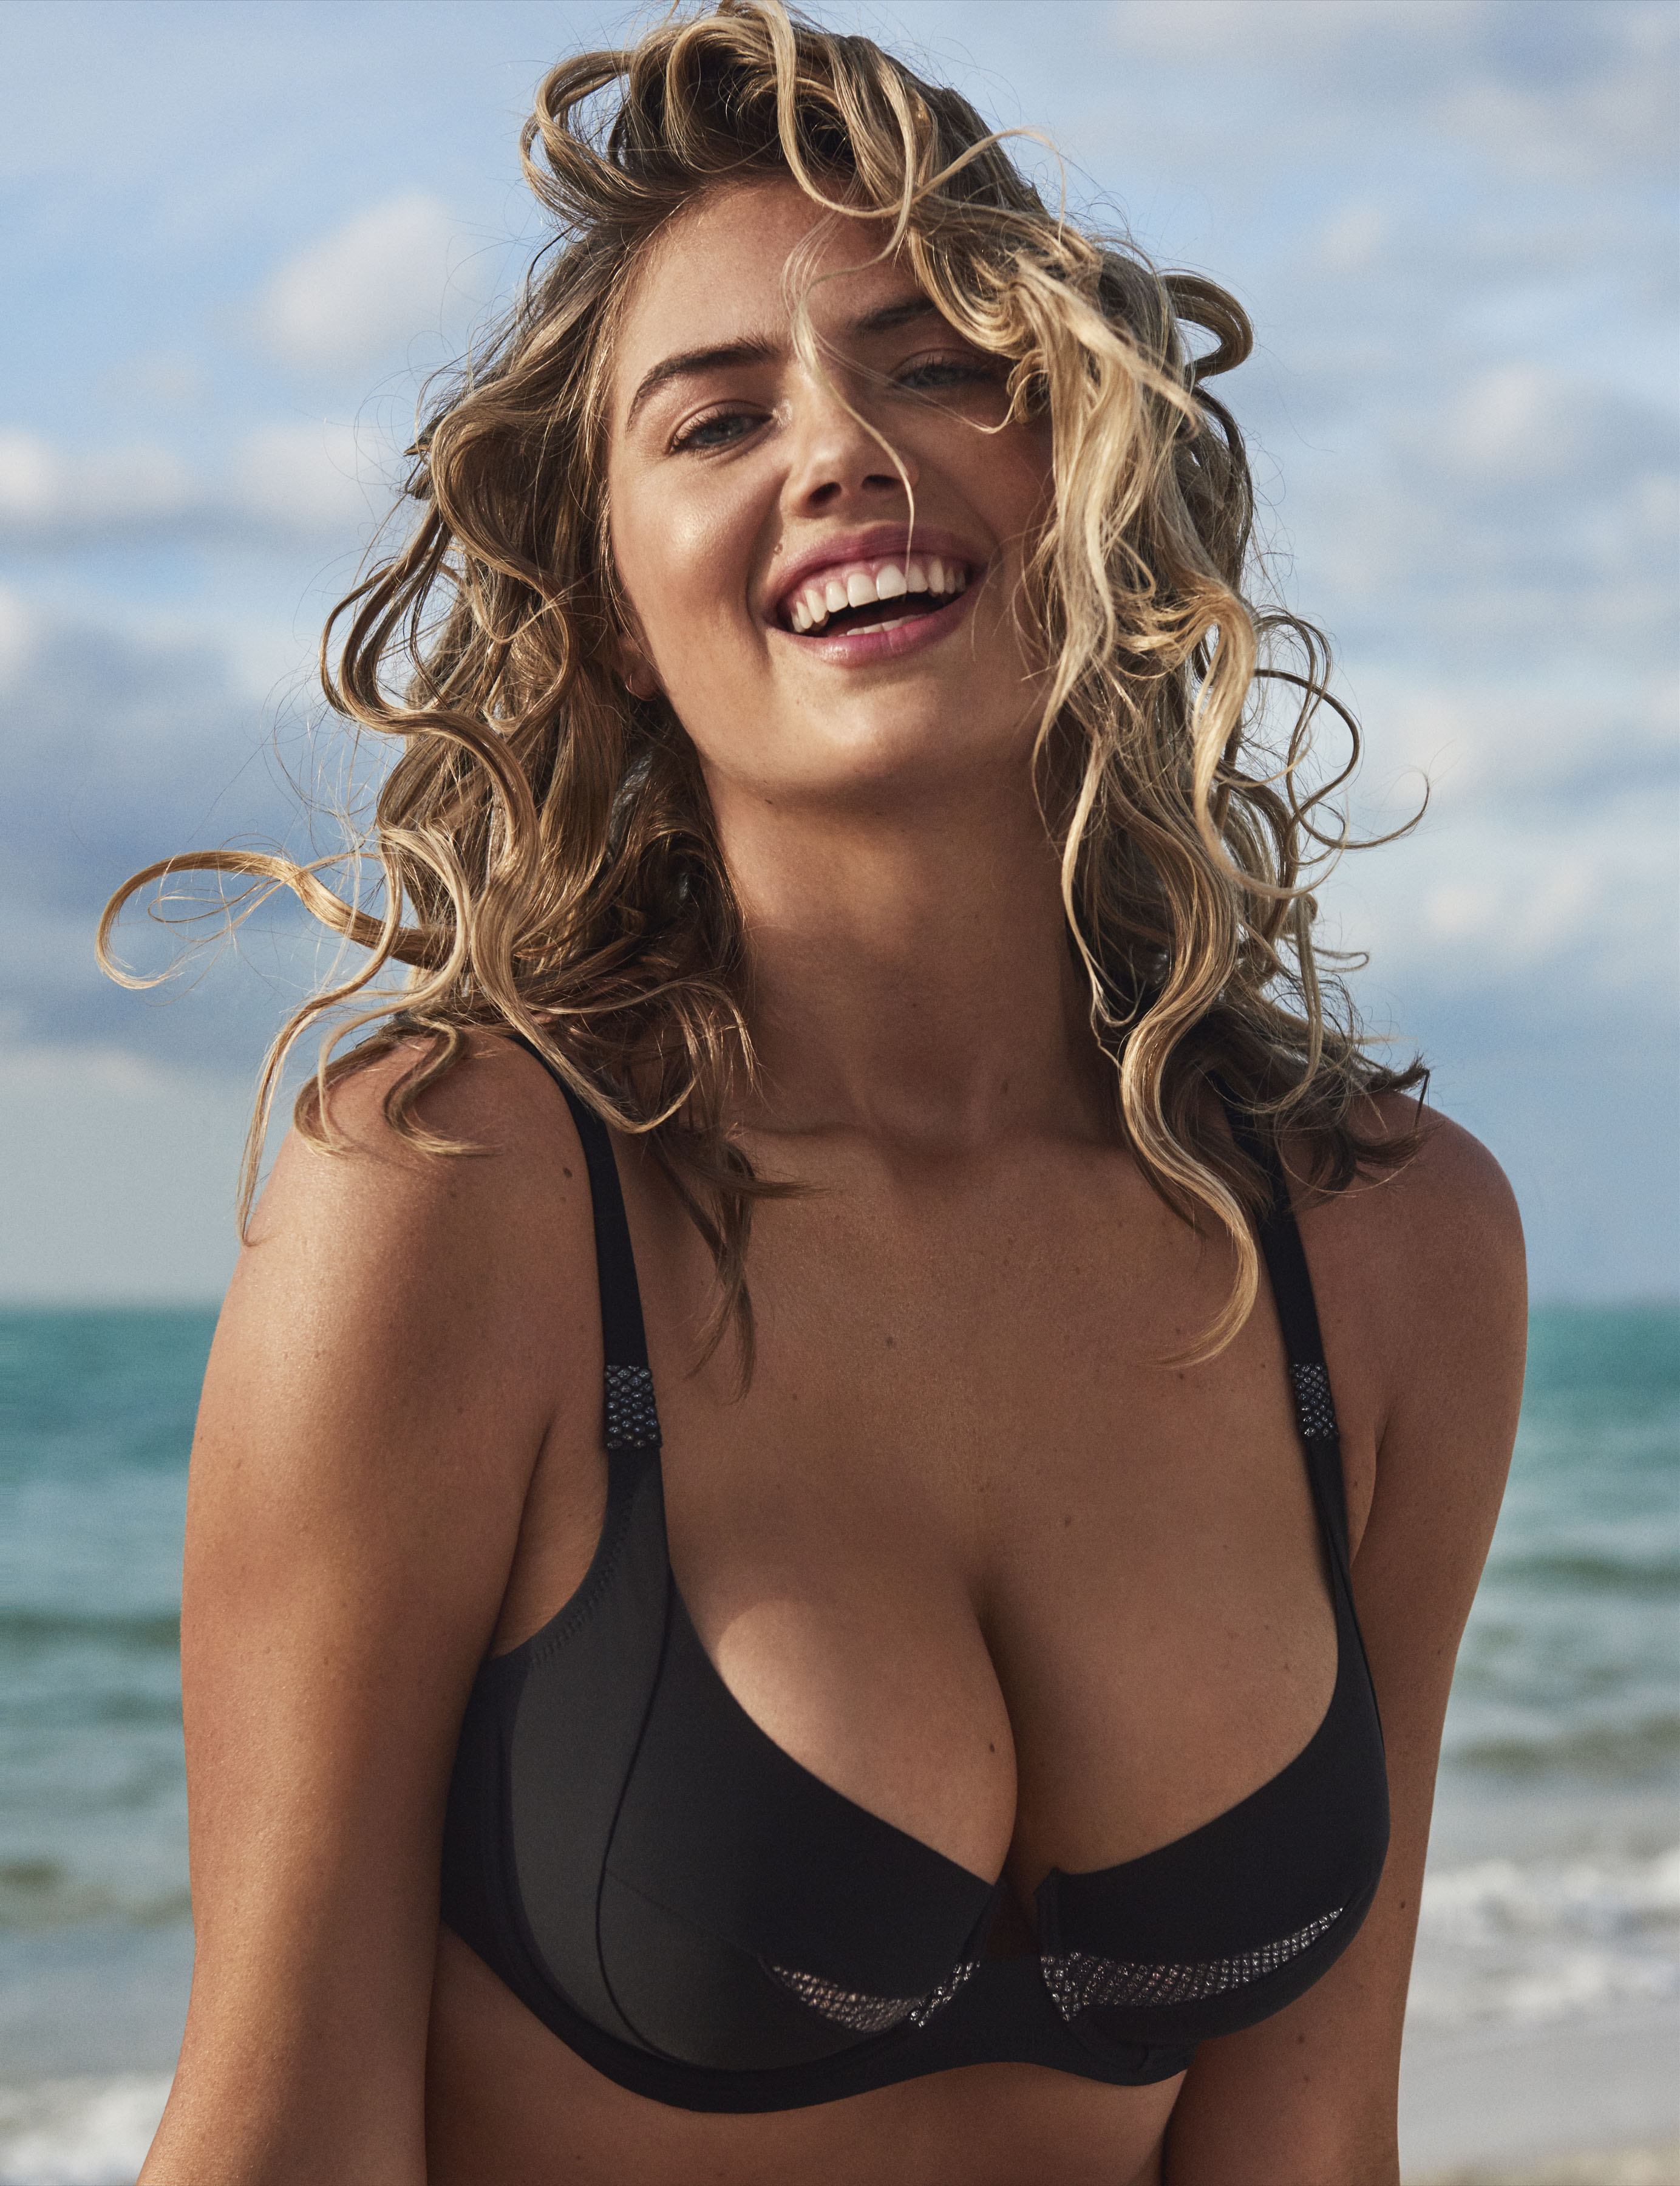 Bikini beauty Kate Upton models Yamamay s Sculpt Collection for Summer  2018. Kate posed in the d617c8a63